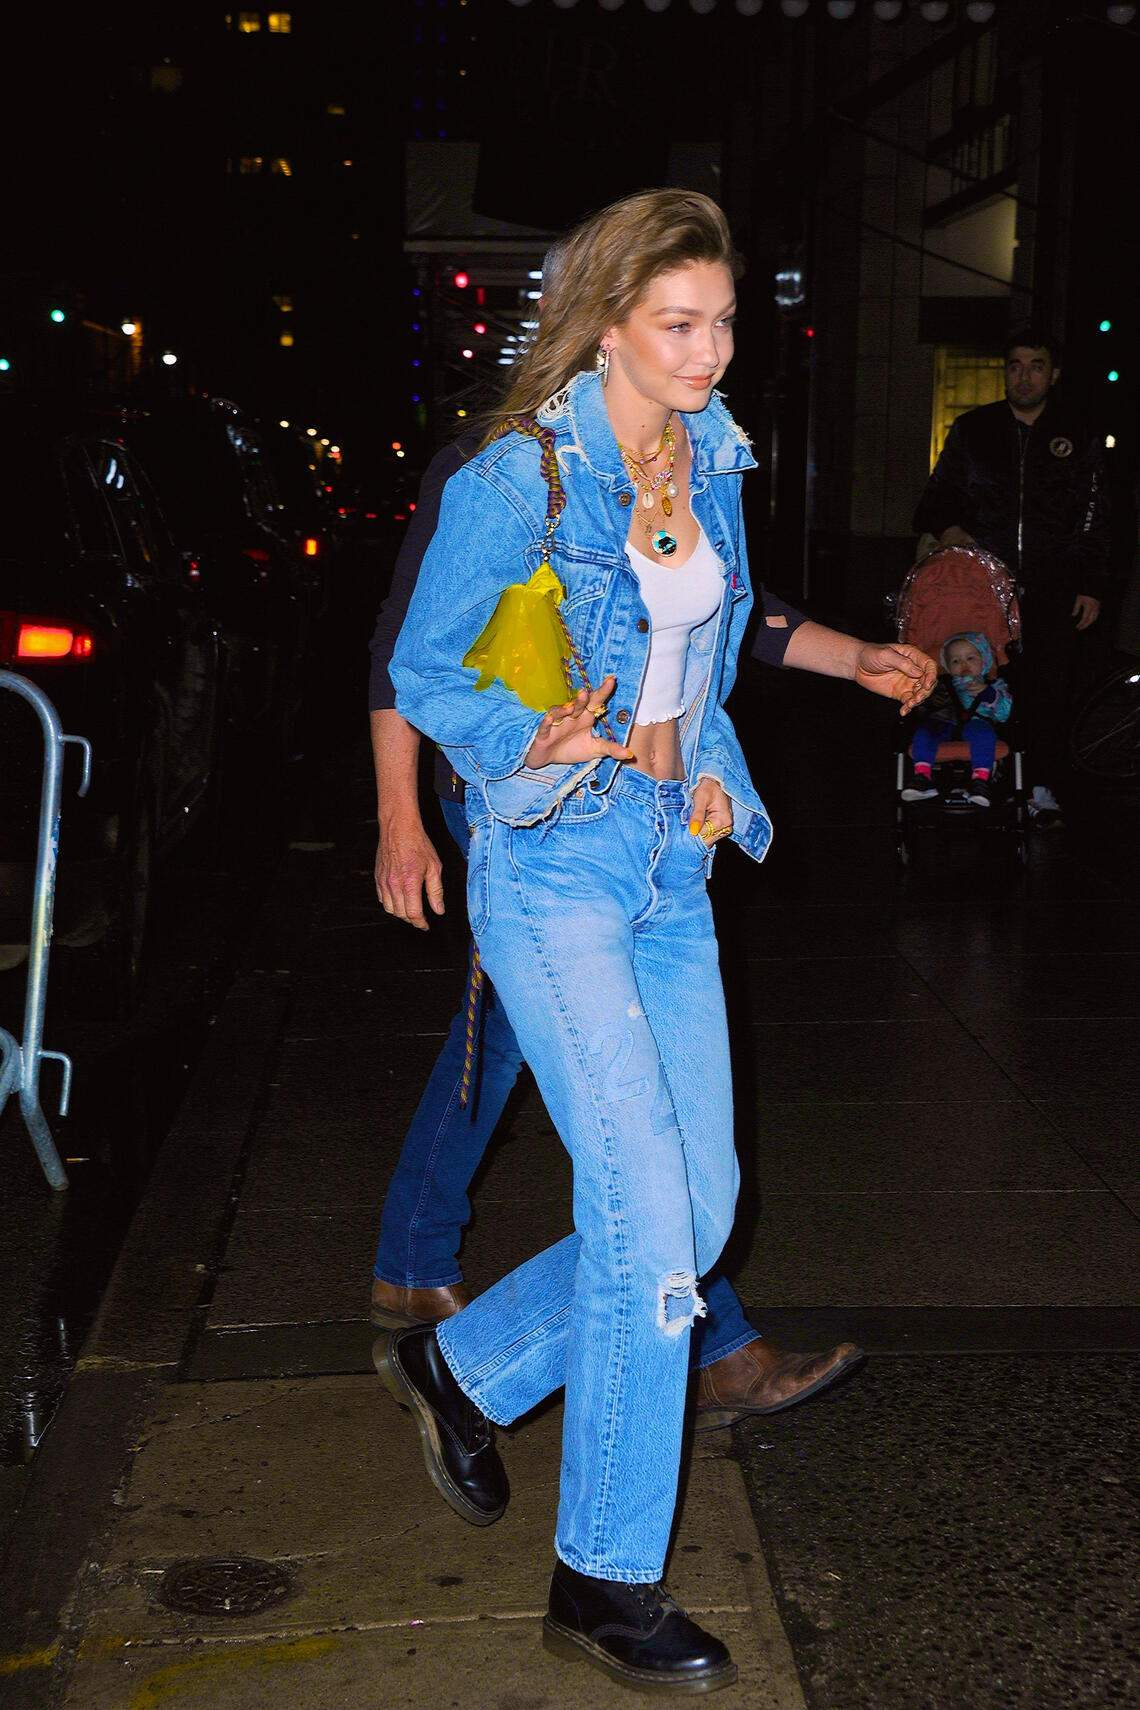 NEW YORK, NY - APRIL 22:  Gigi Hadid seen out and about in Manhattan on  April 22, 2019 in New York City.  (Photo by Robert Kamau/GC Images)